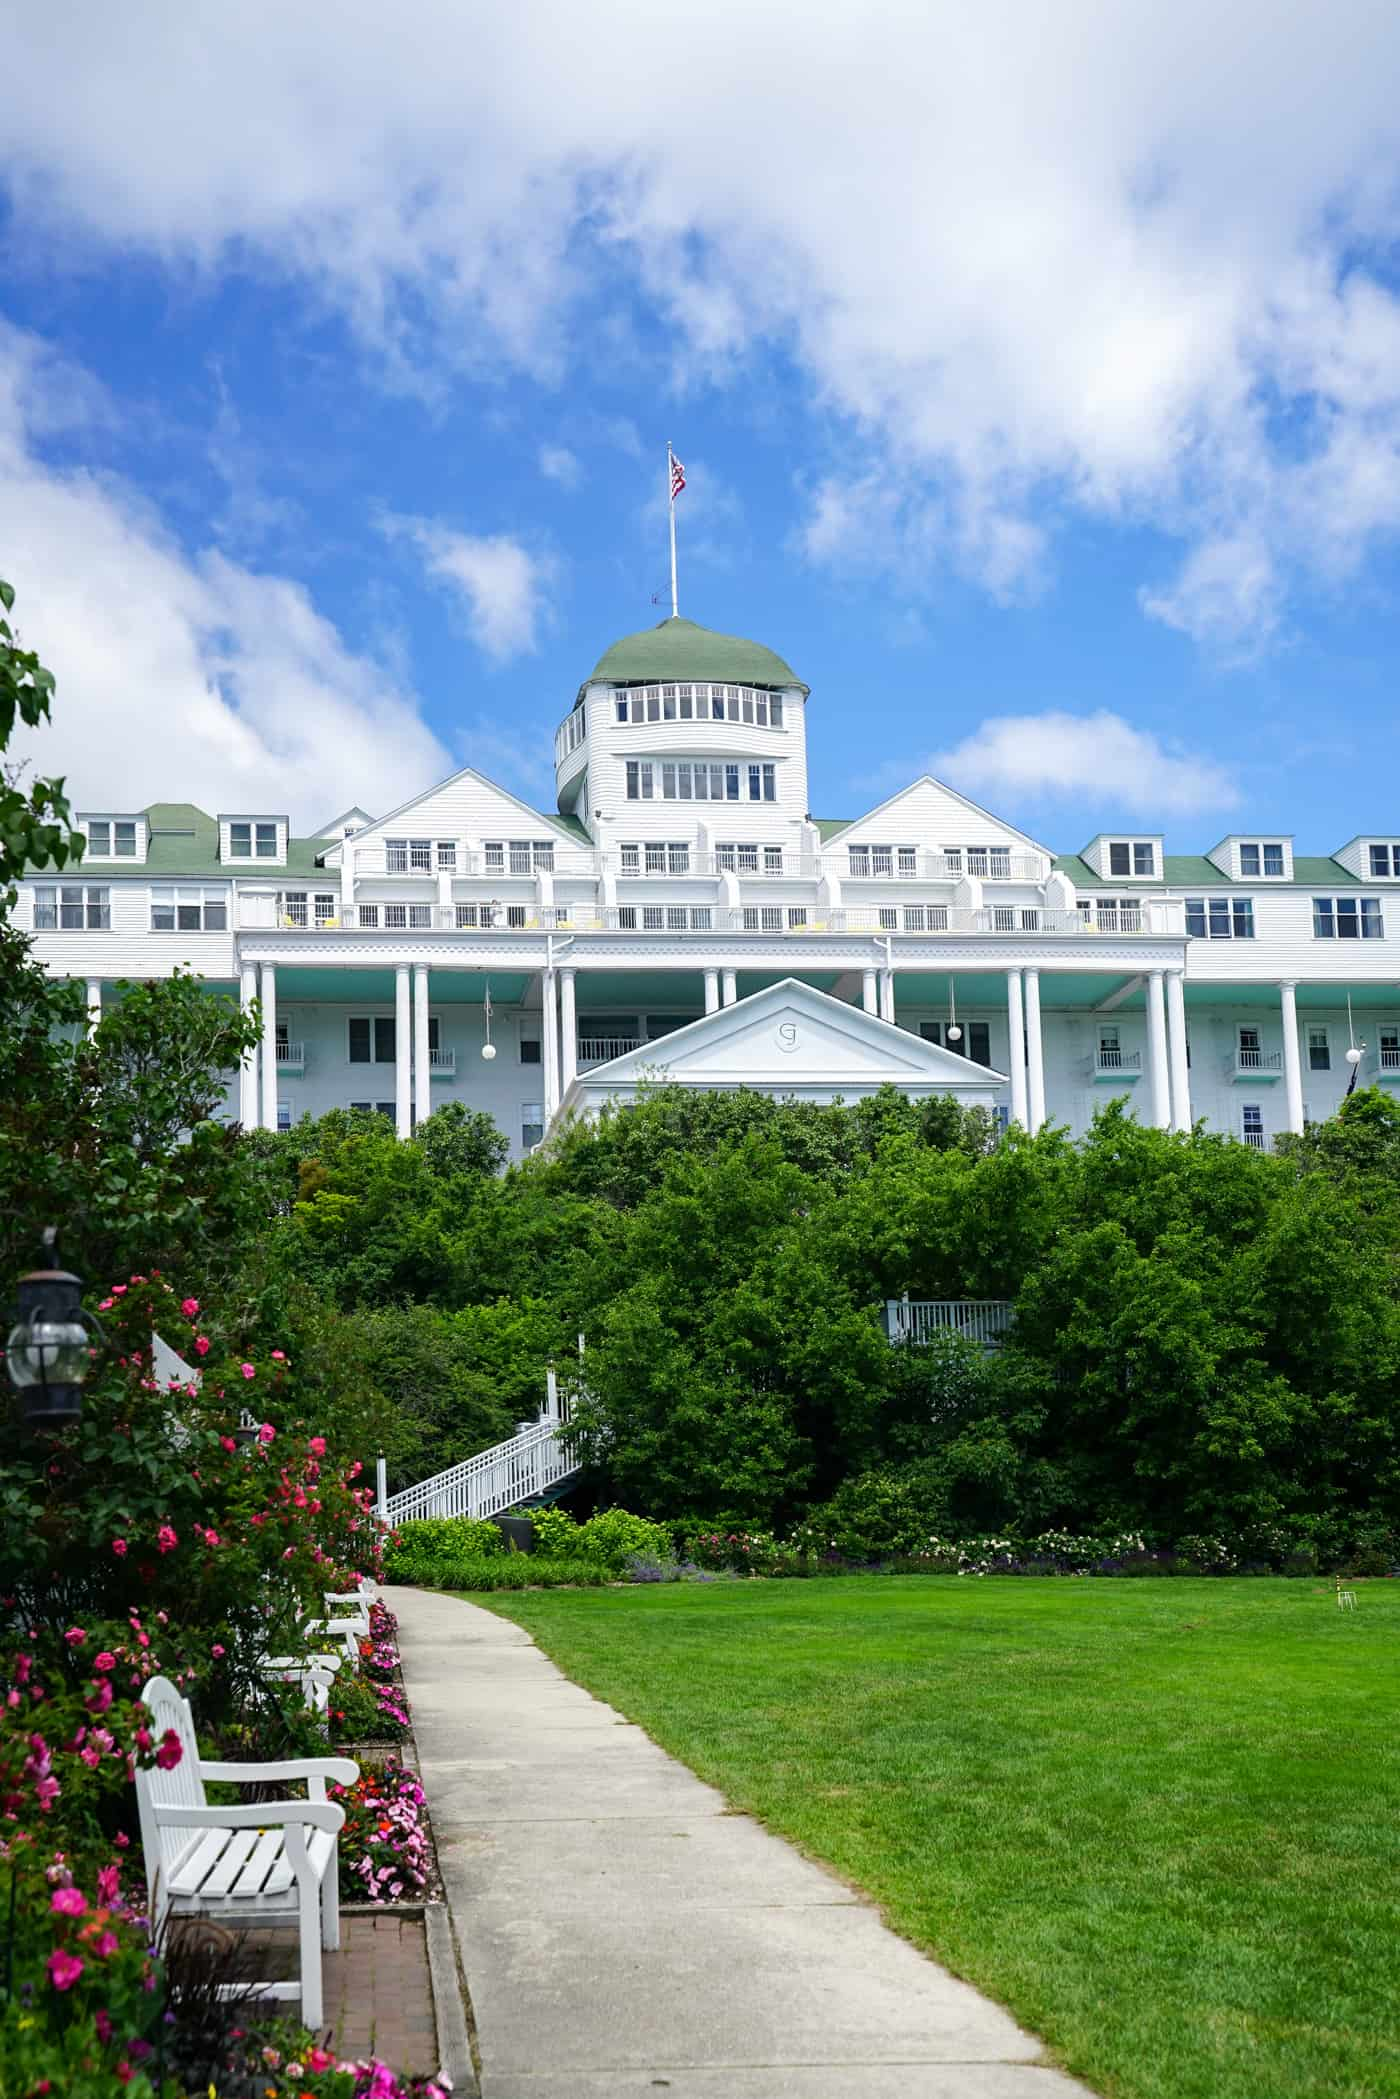 A view of the Grand Hotel from the gardens below